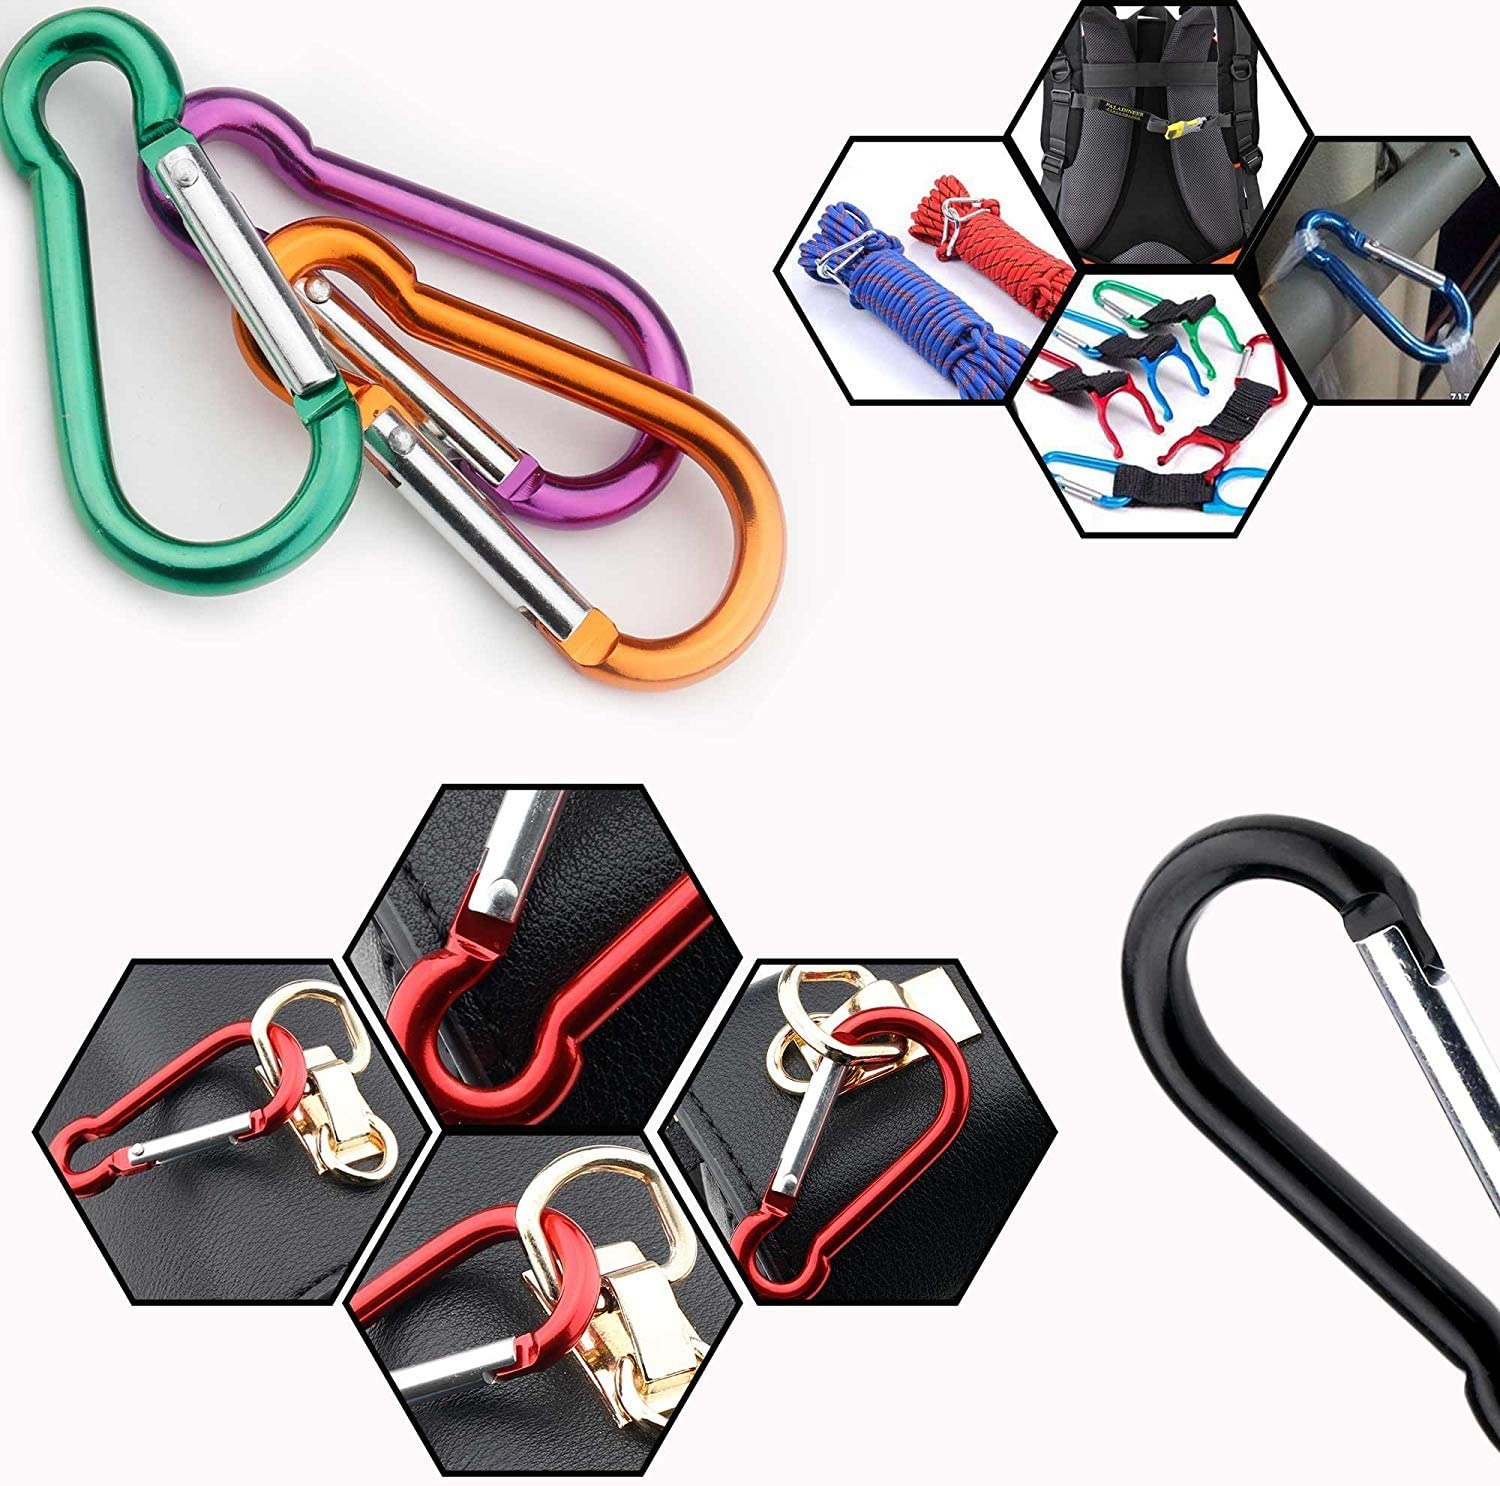 Small//Mini Carabiner for Key Chain Climbing Camping Fishing Hiking Travaling Multicolored Gimars Spring-loaded Gate Carabiner Clips 6cm D Shape with Locking Screw Nuts